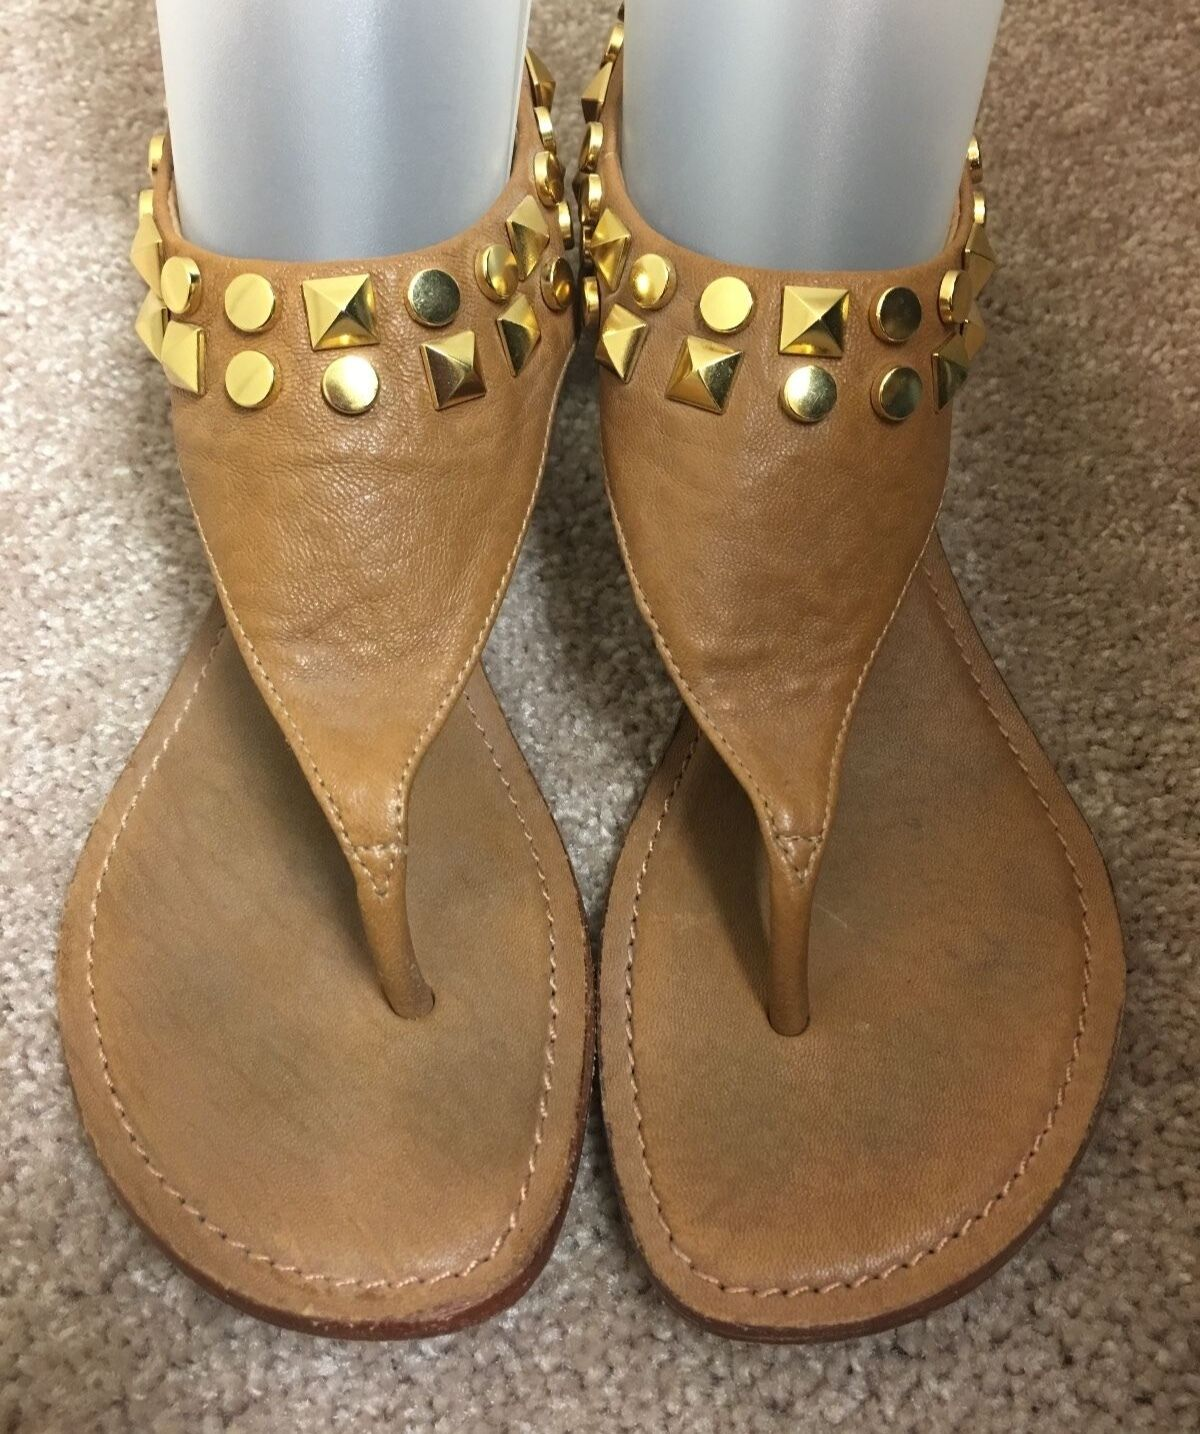 Tory Burch Studded Leather Sandal Royal Tan Size 6 1 2 M-Great Condition